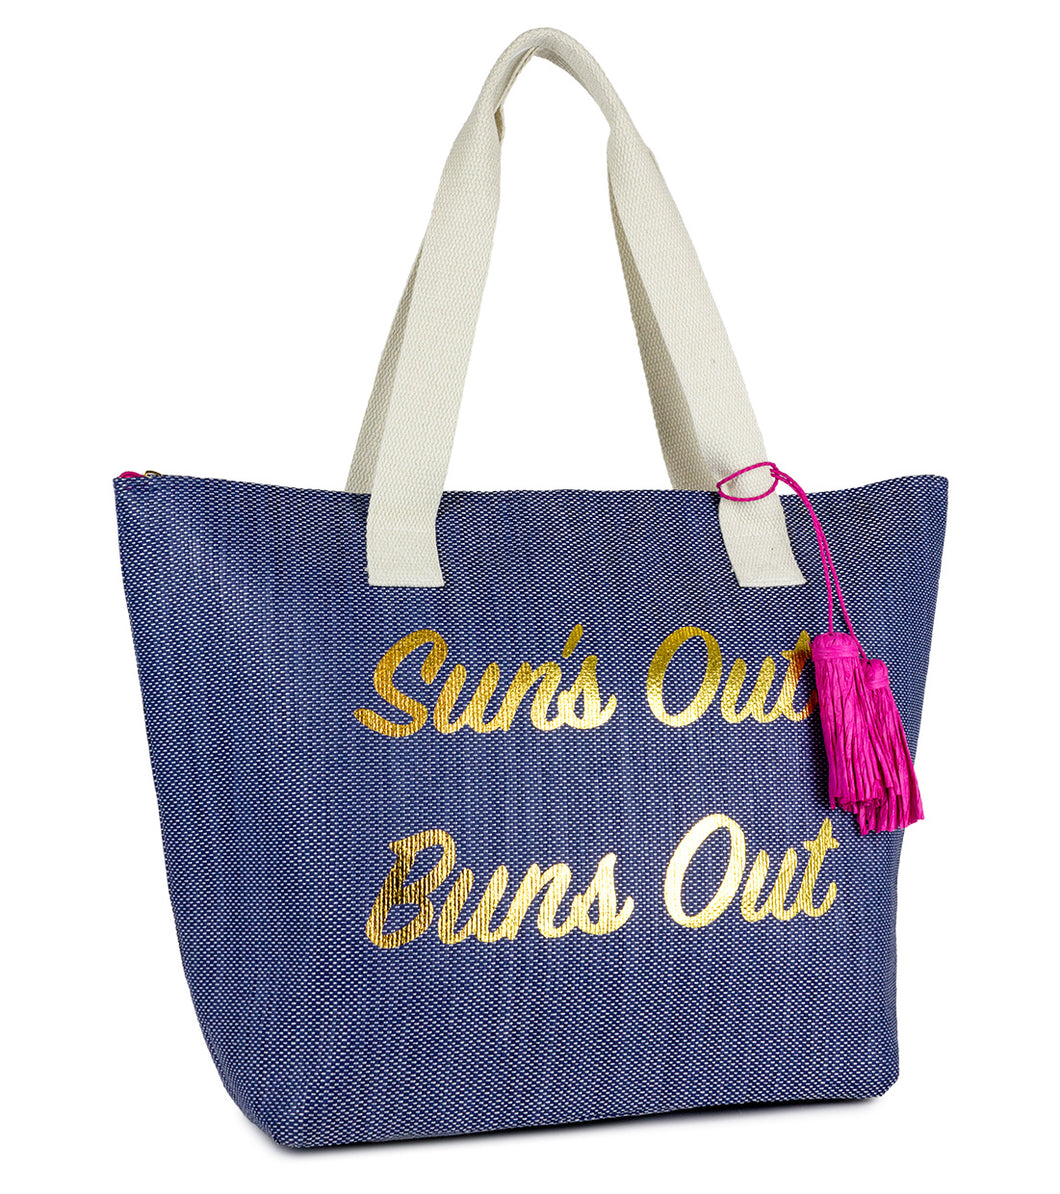 Sun's Out Buns Out Insulated Tote Bag - Just Jamie